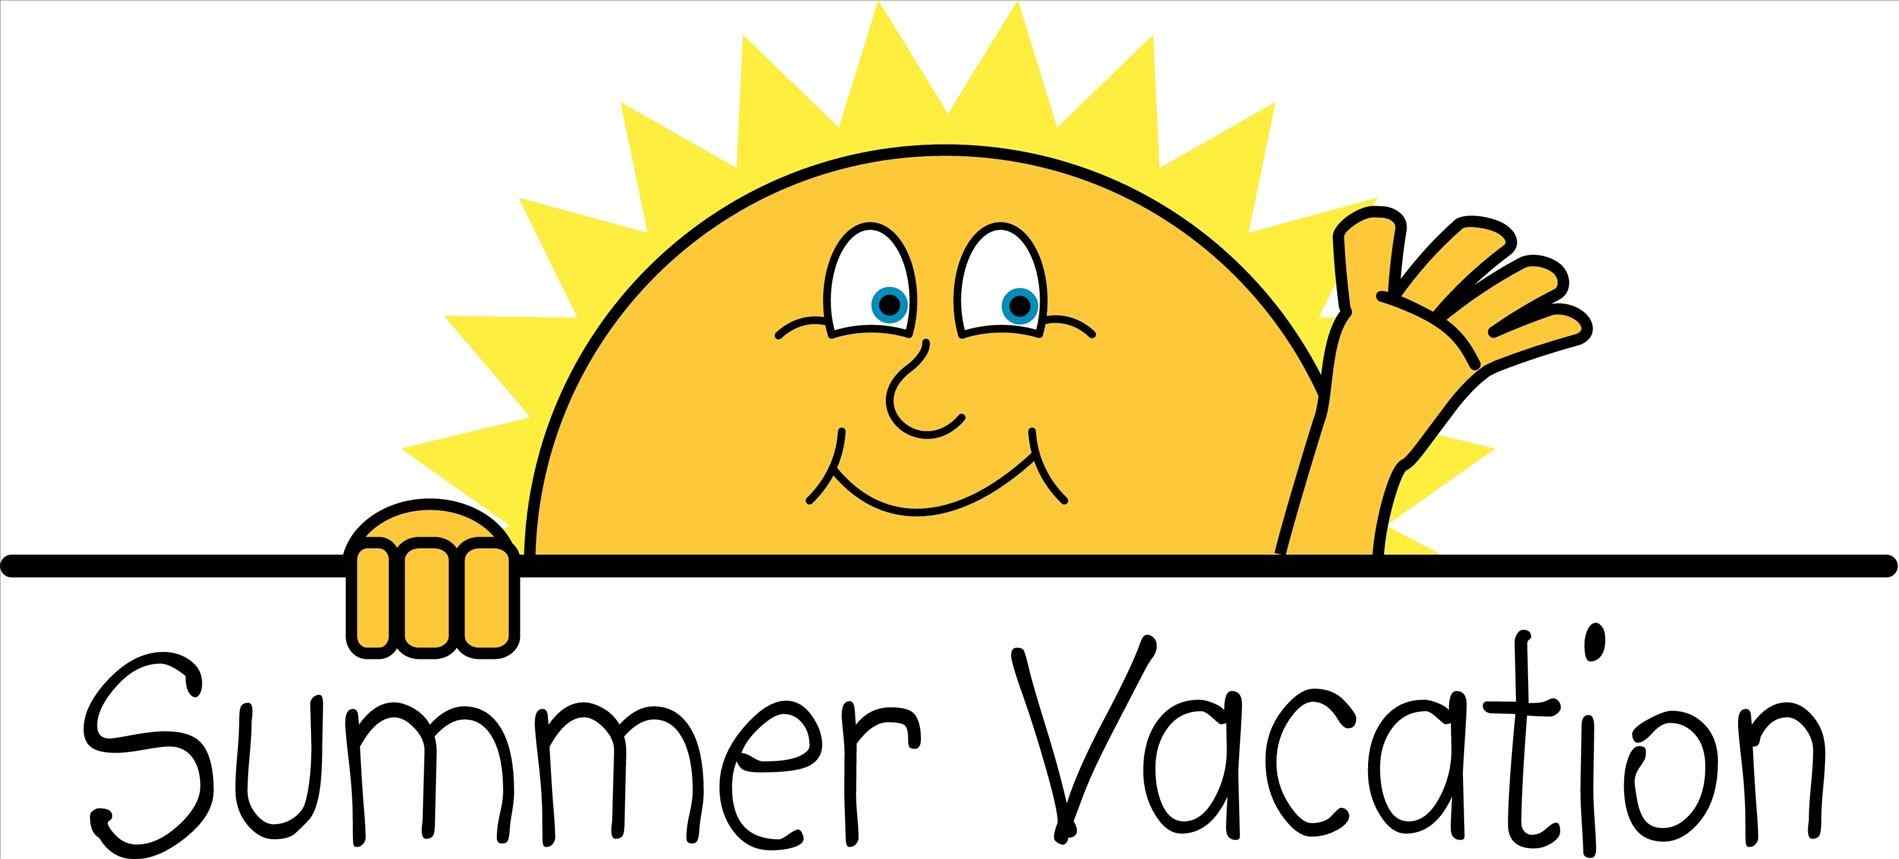 1899x859 In Color U Christmas U Summer Vacation Clip Art Black And White